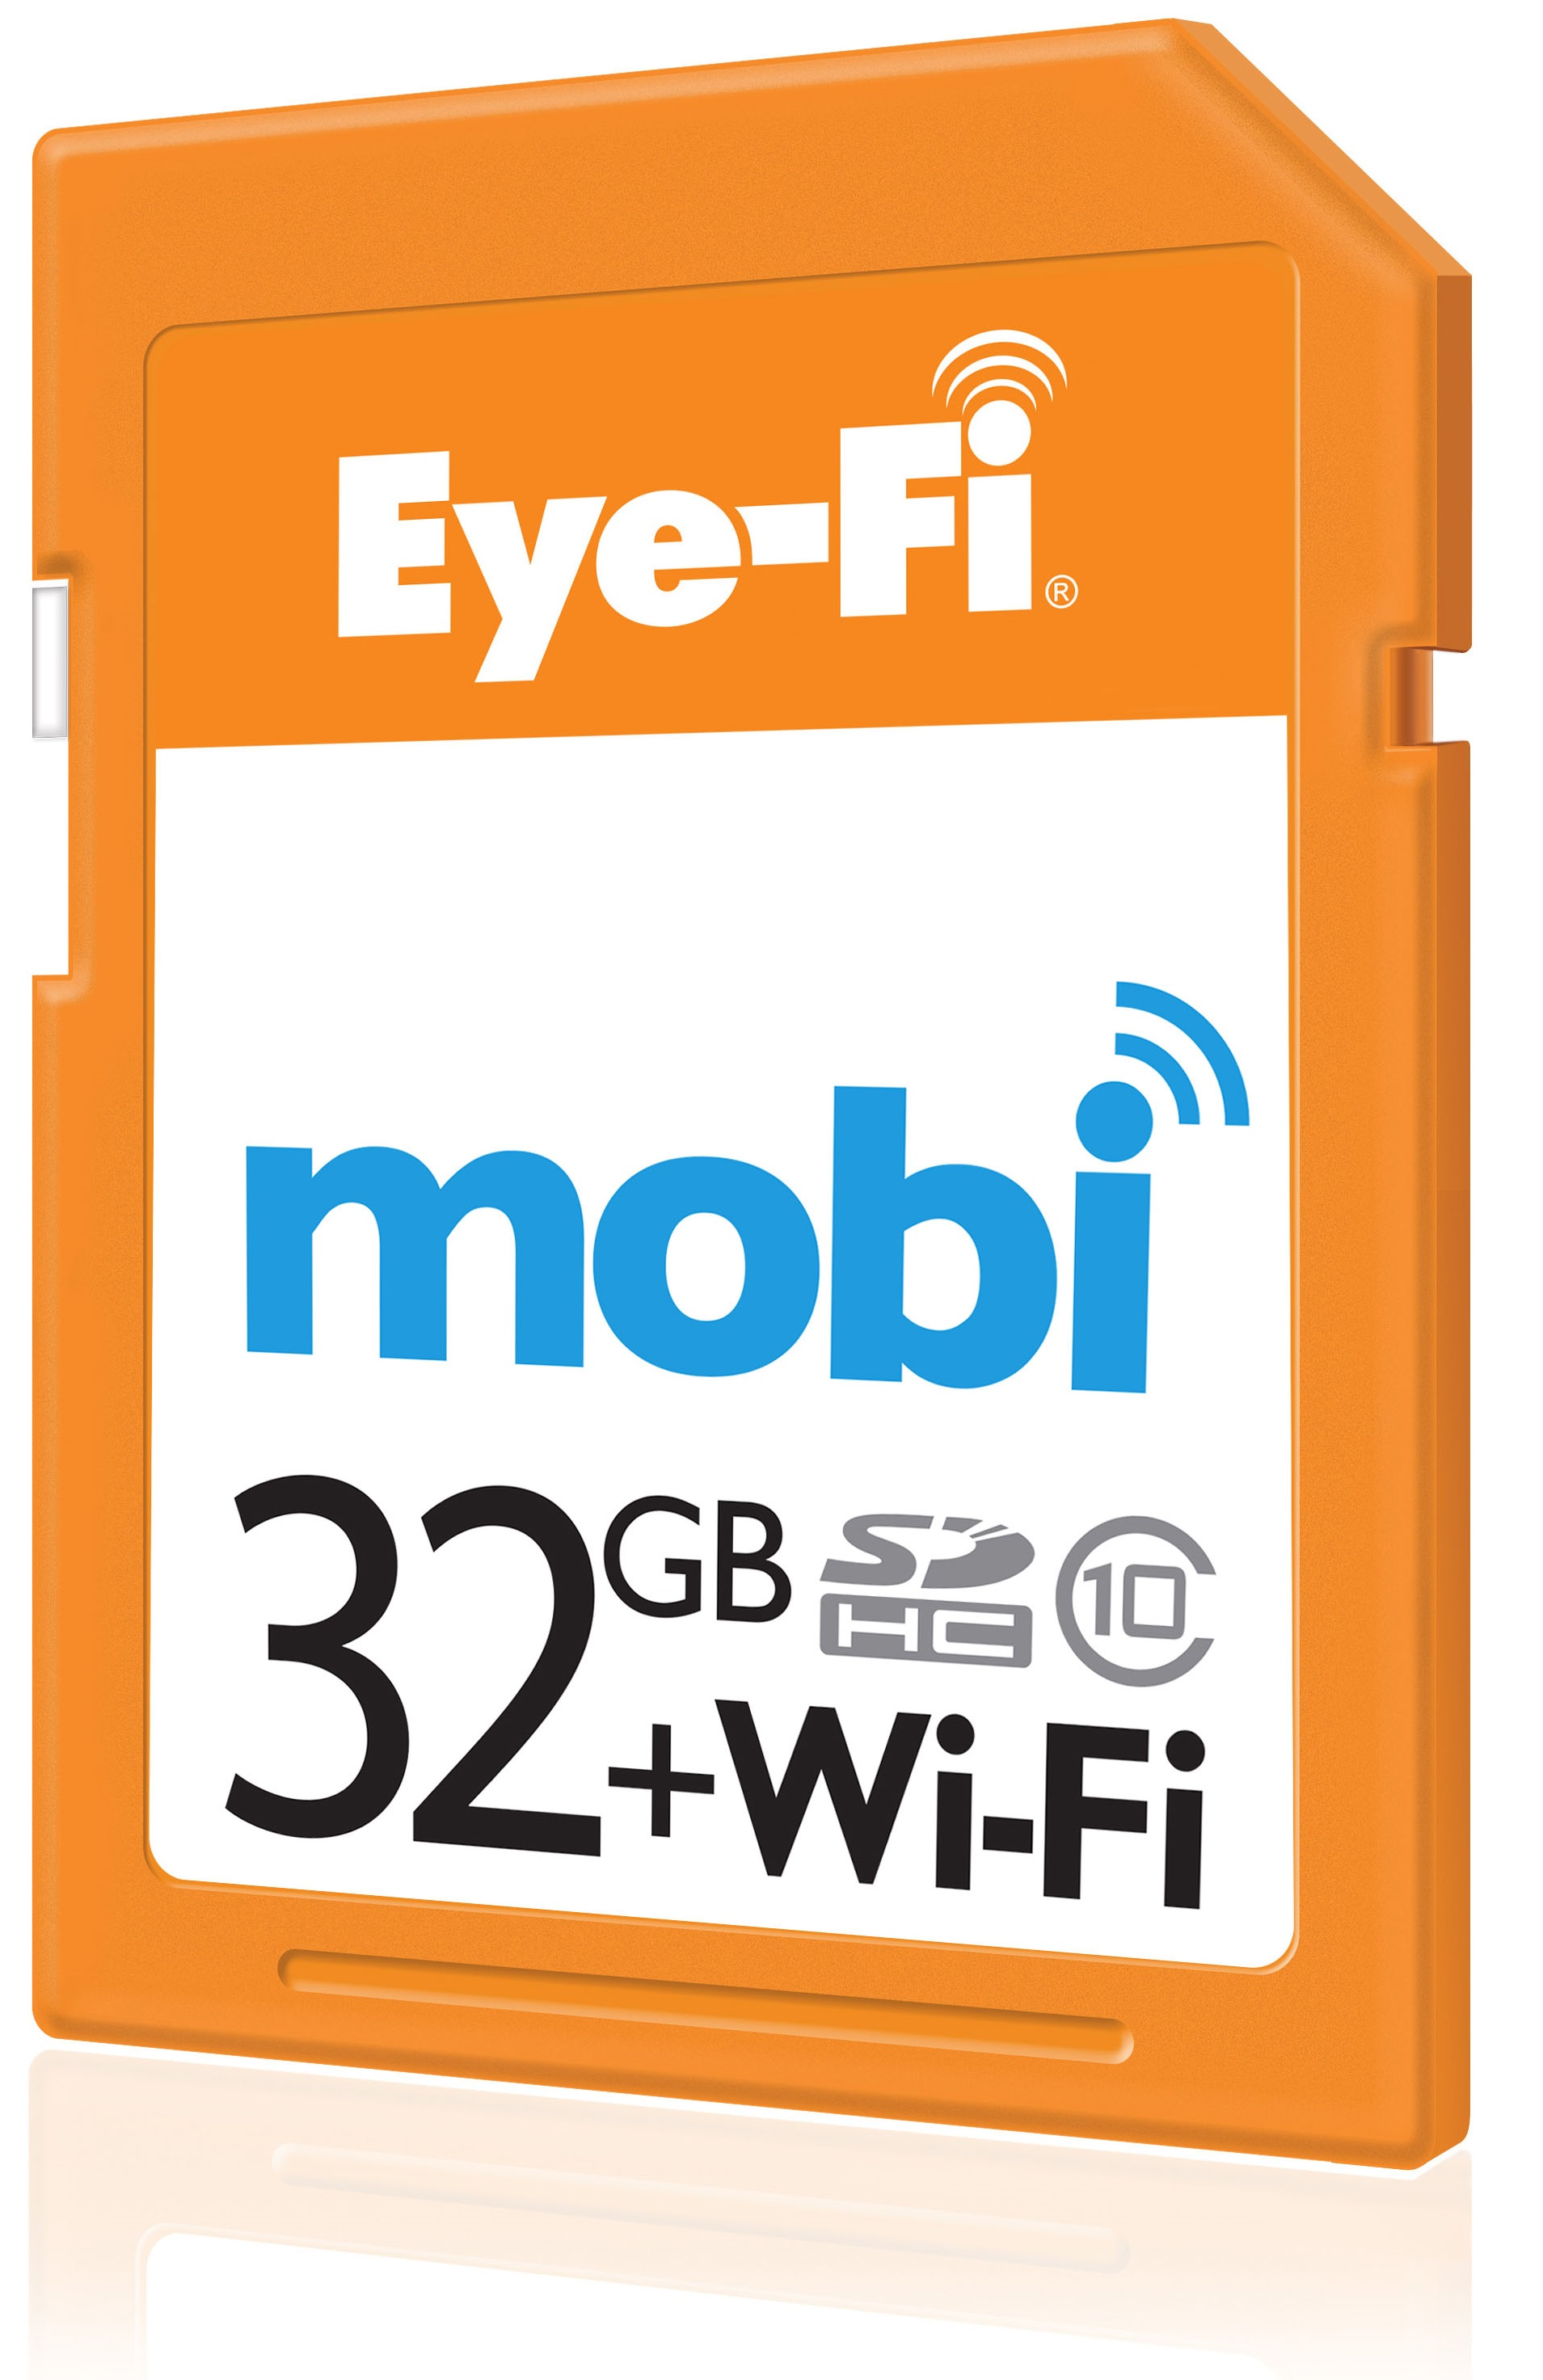 EYE-FI SDHC 32 GB mobi WiFi